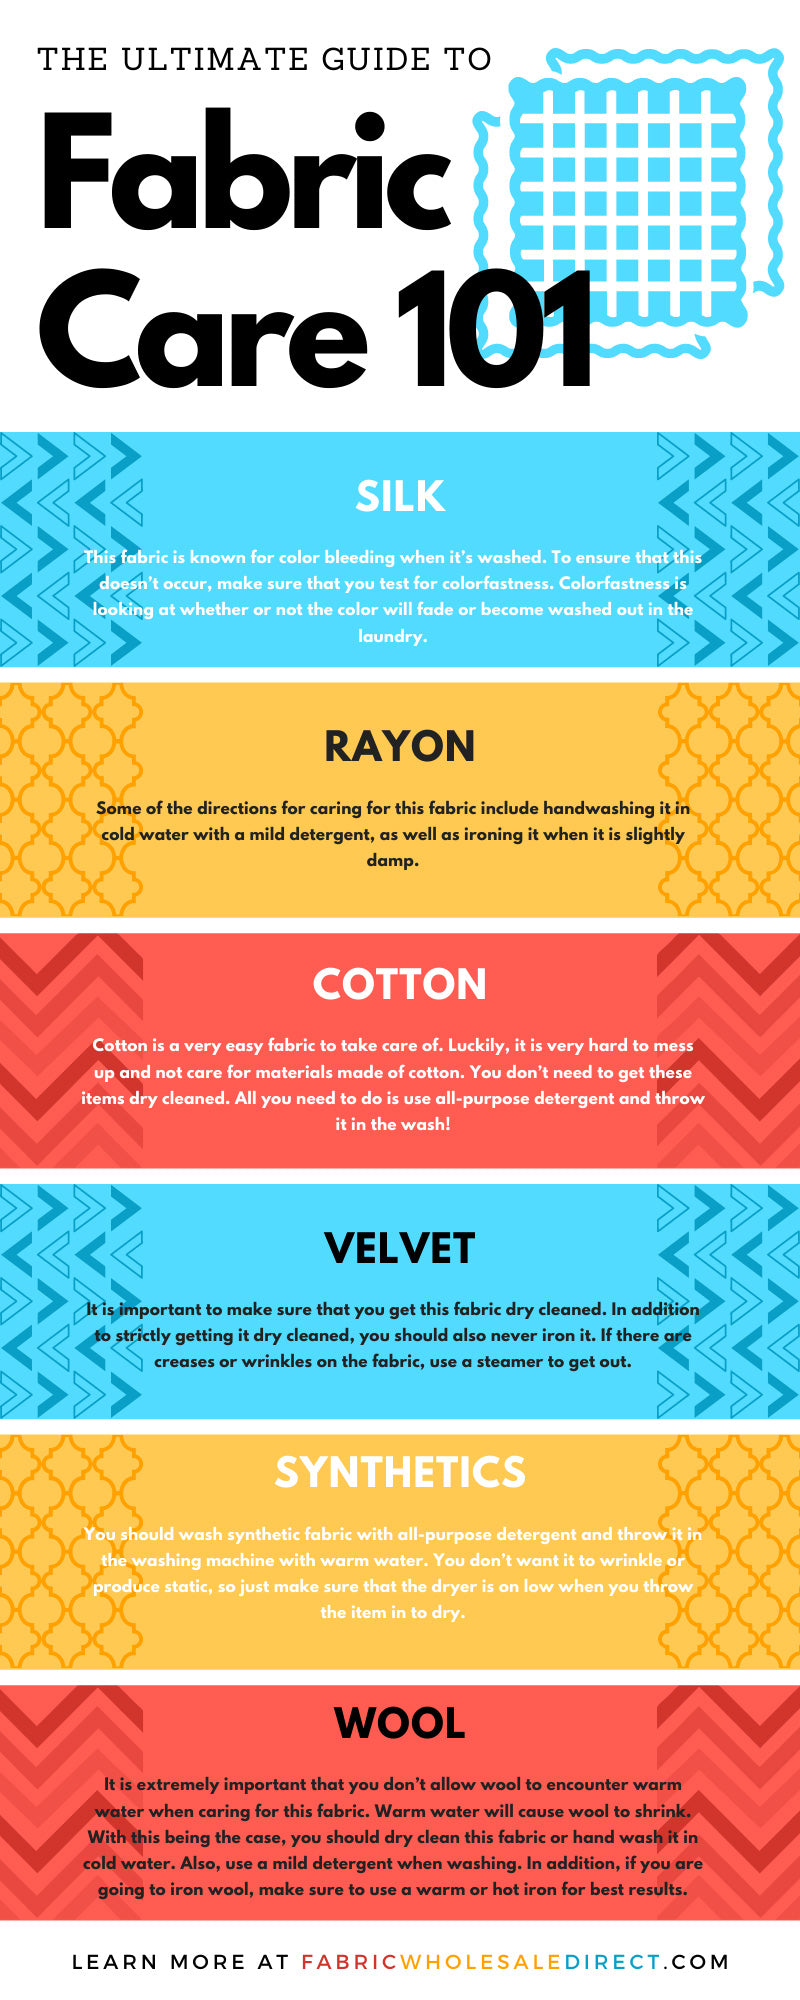 The Ultimate Guide To Fabric Care 101